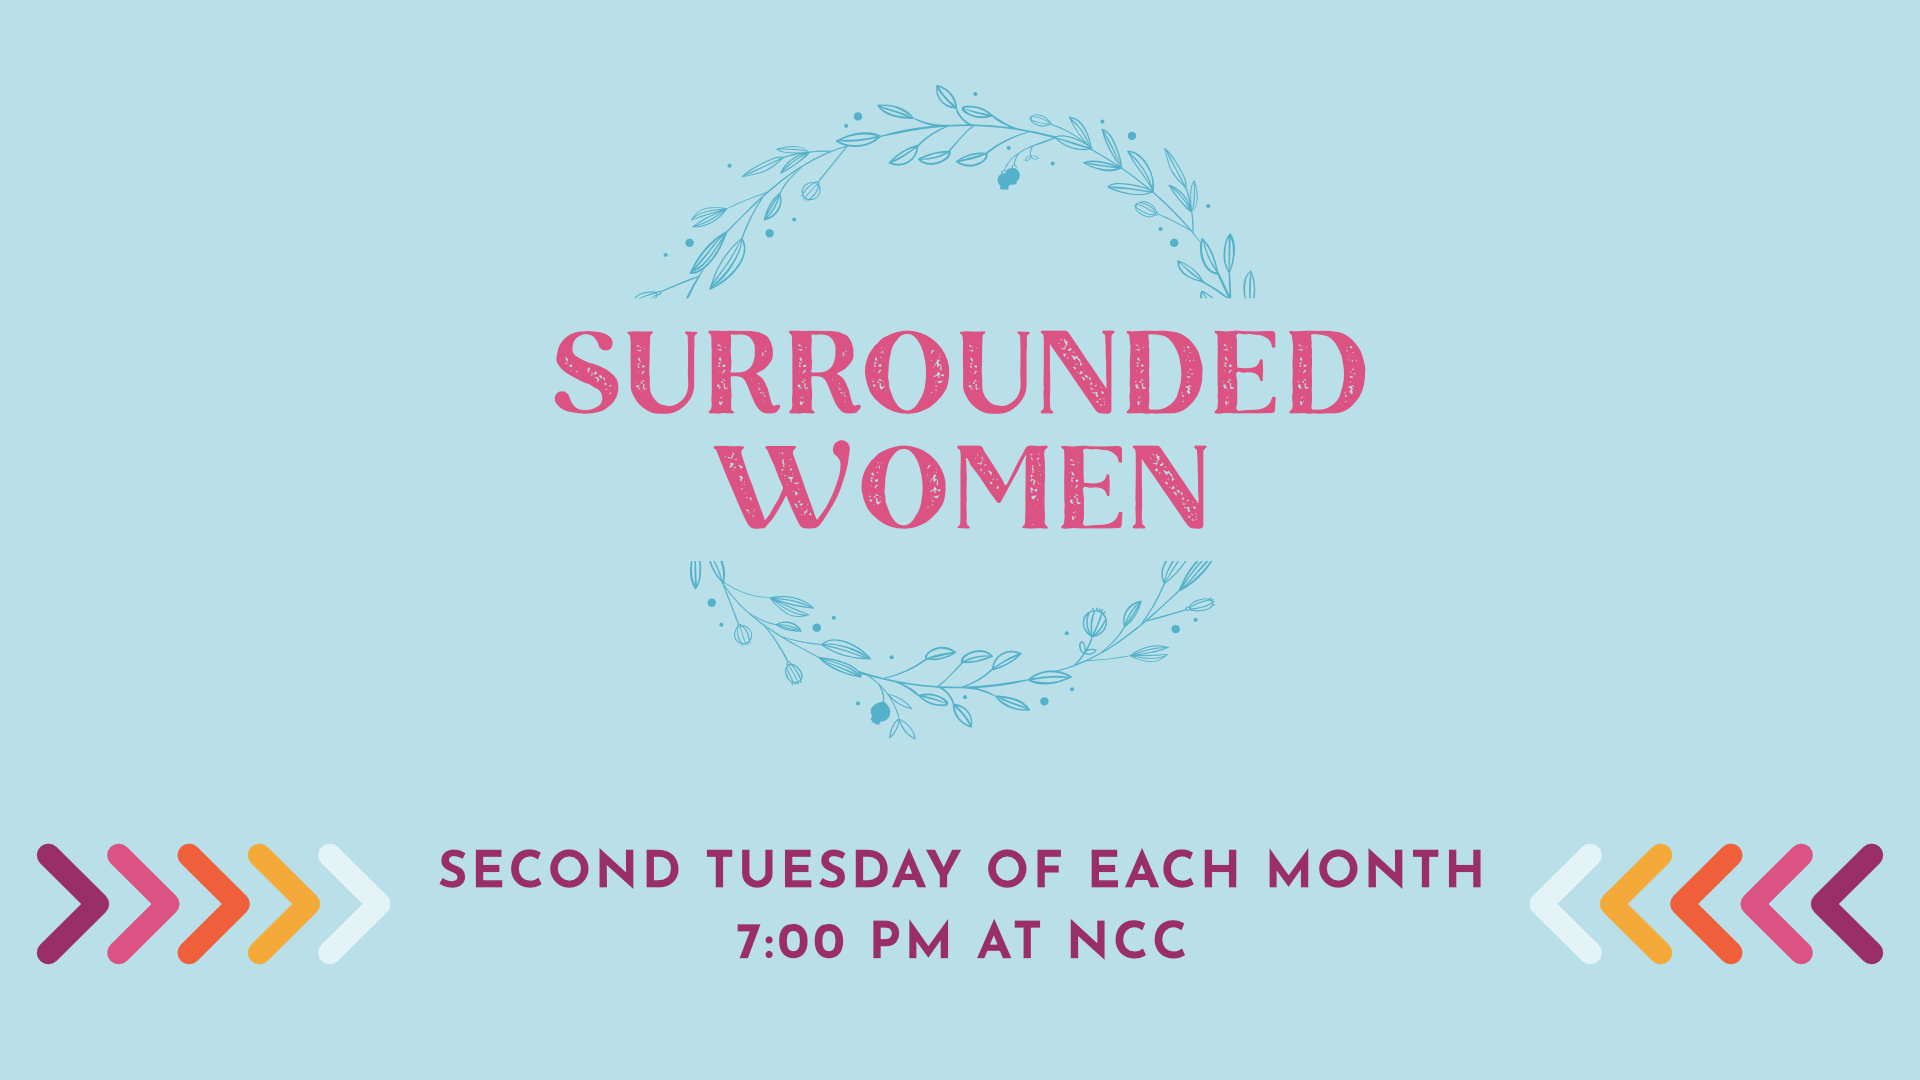 Surrounded Women - Second Tuesday of each month, 7 PM at NCC